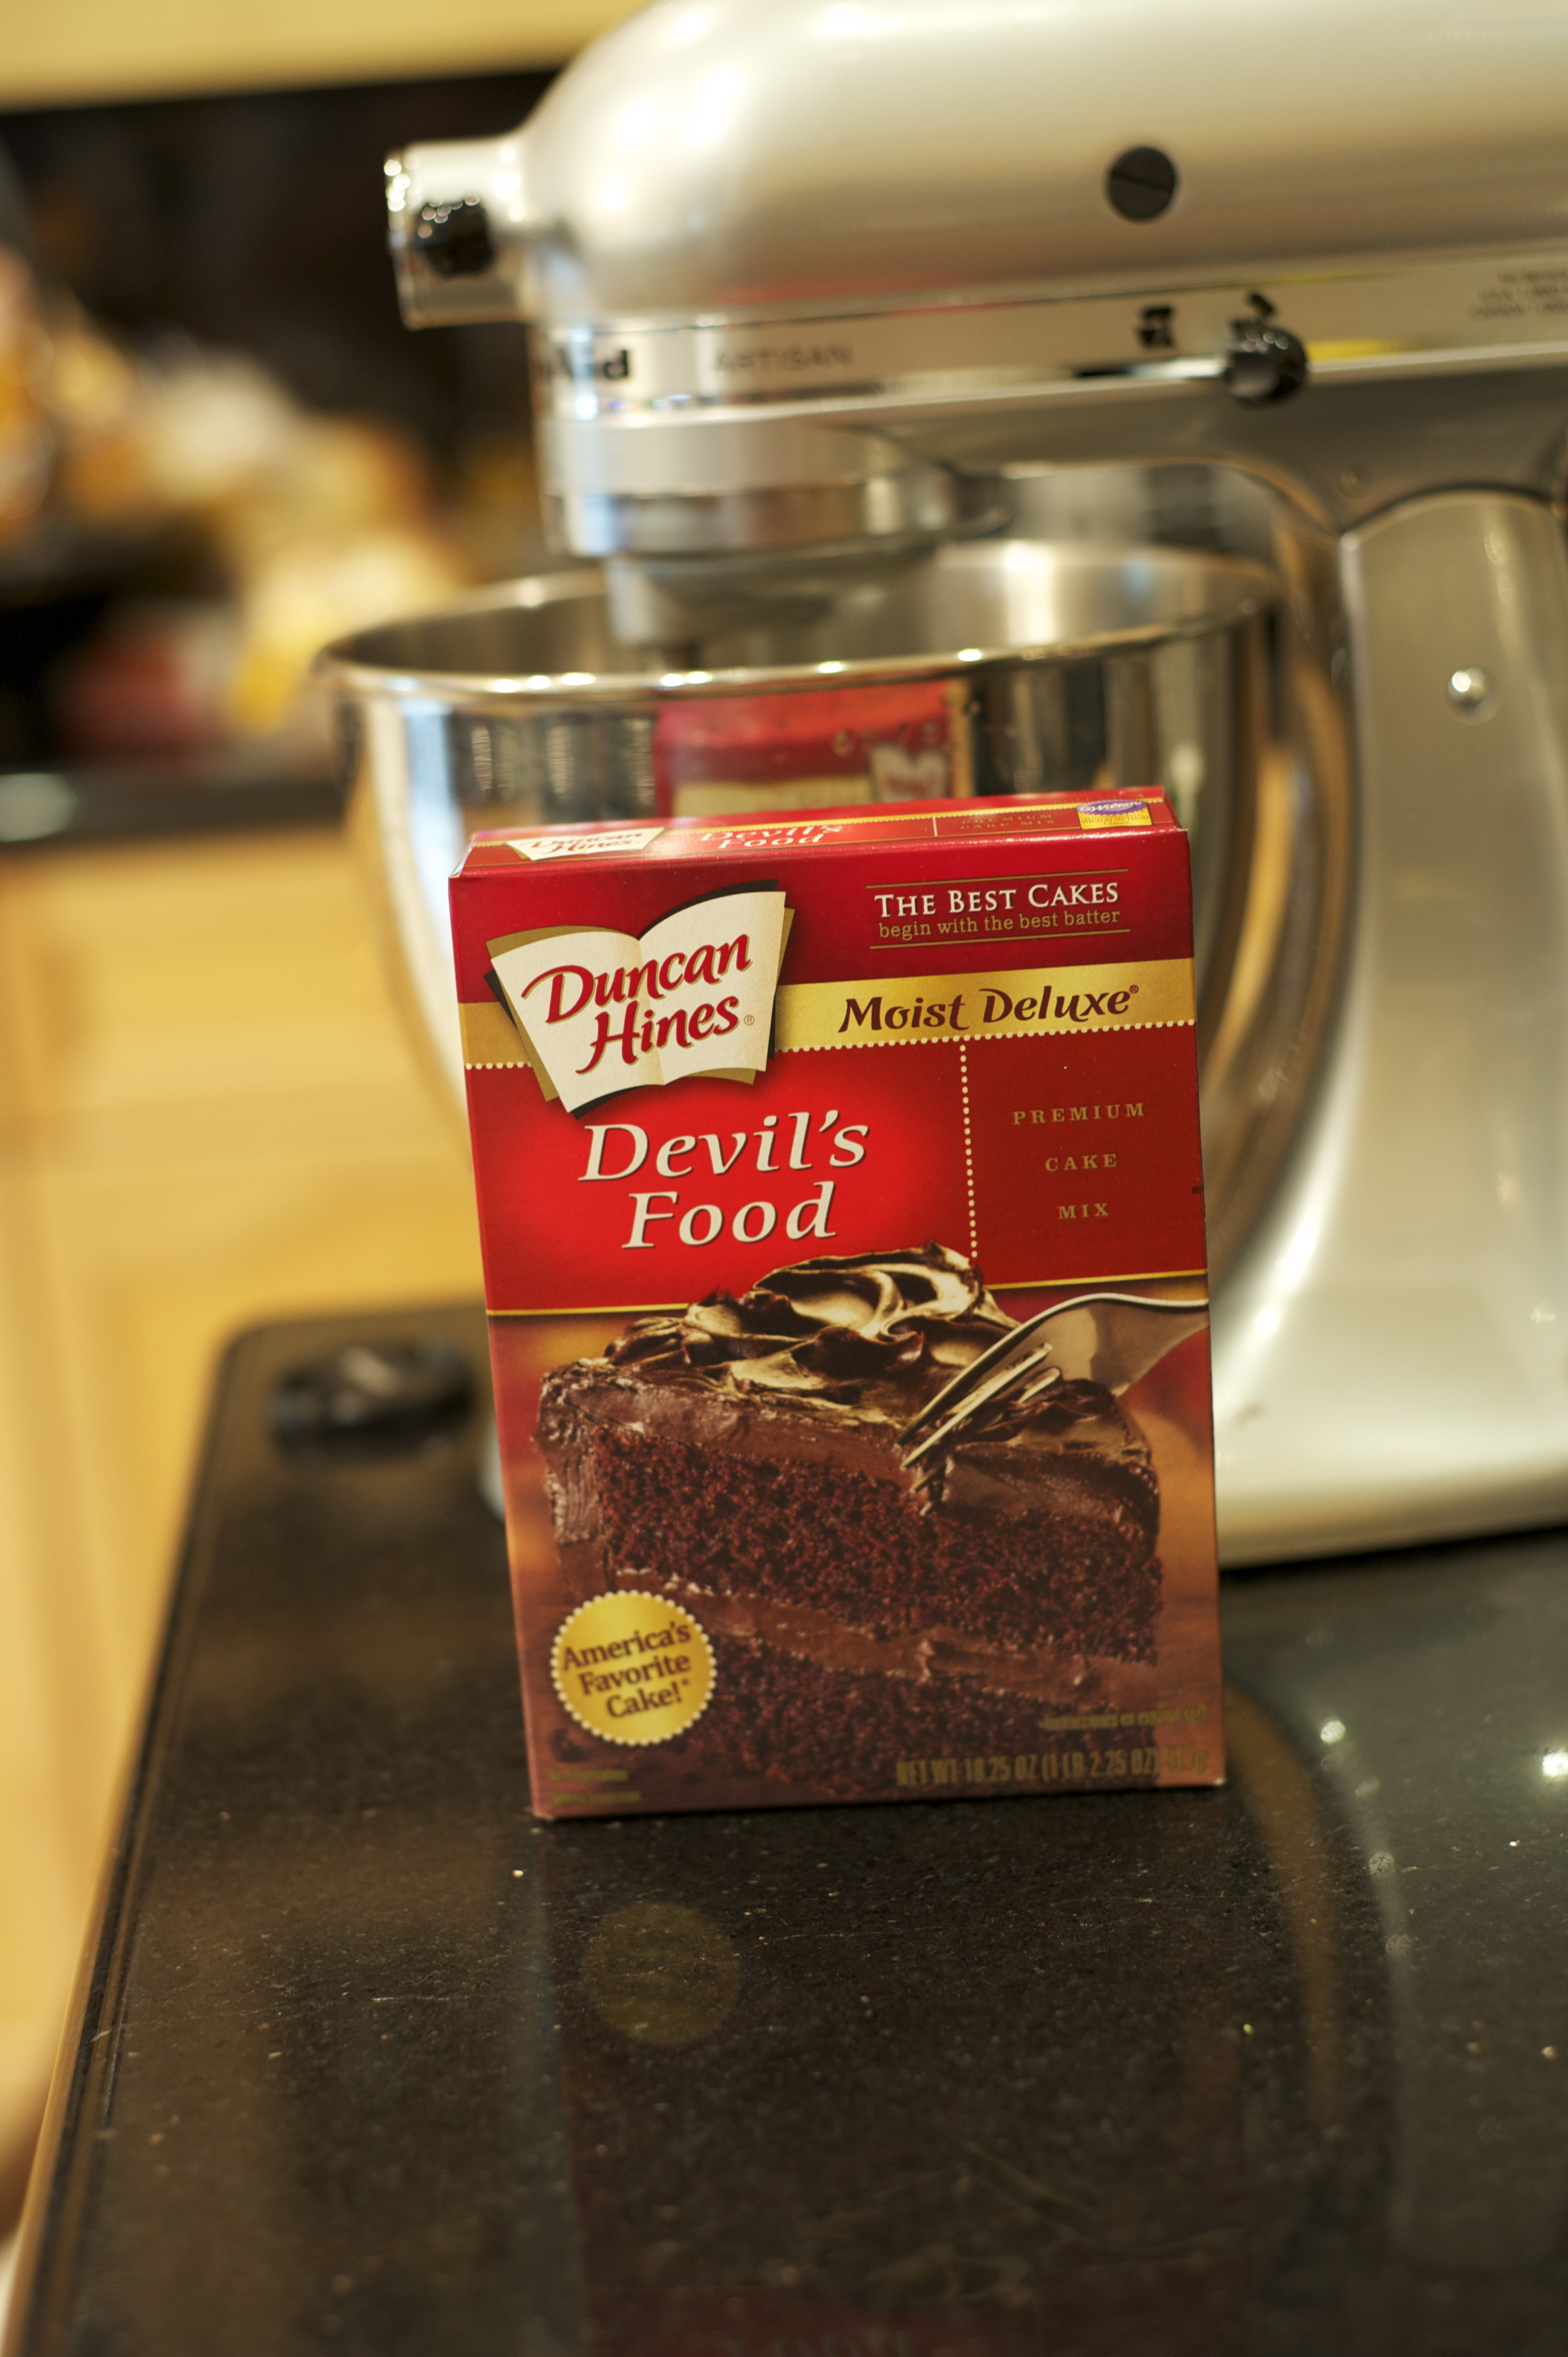 Duncan Hines Devil's food cake